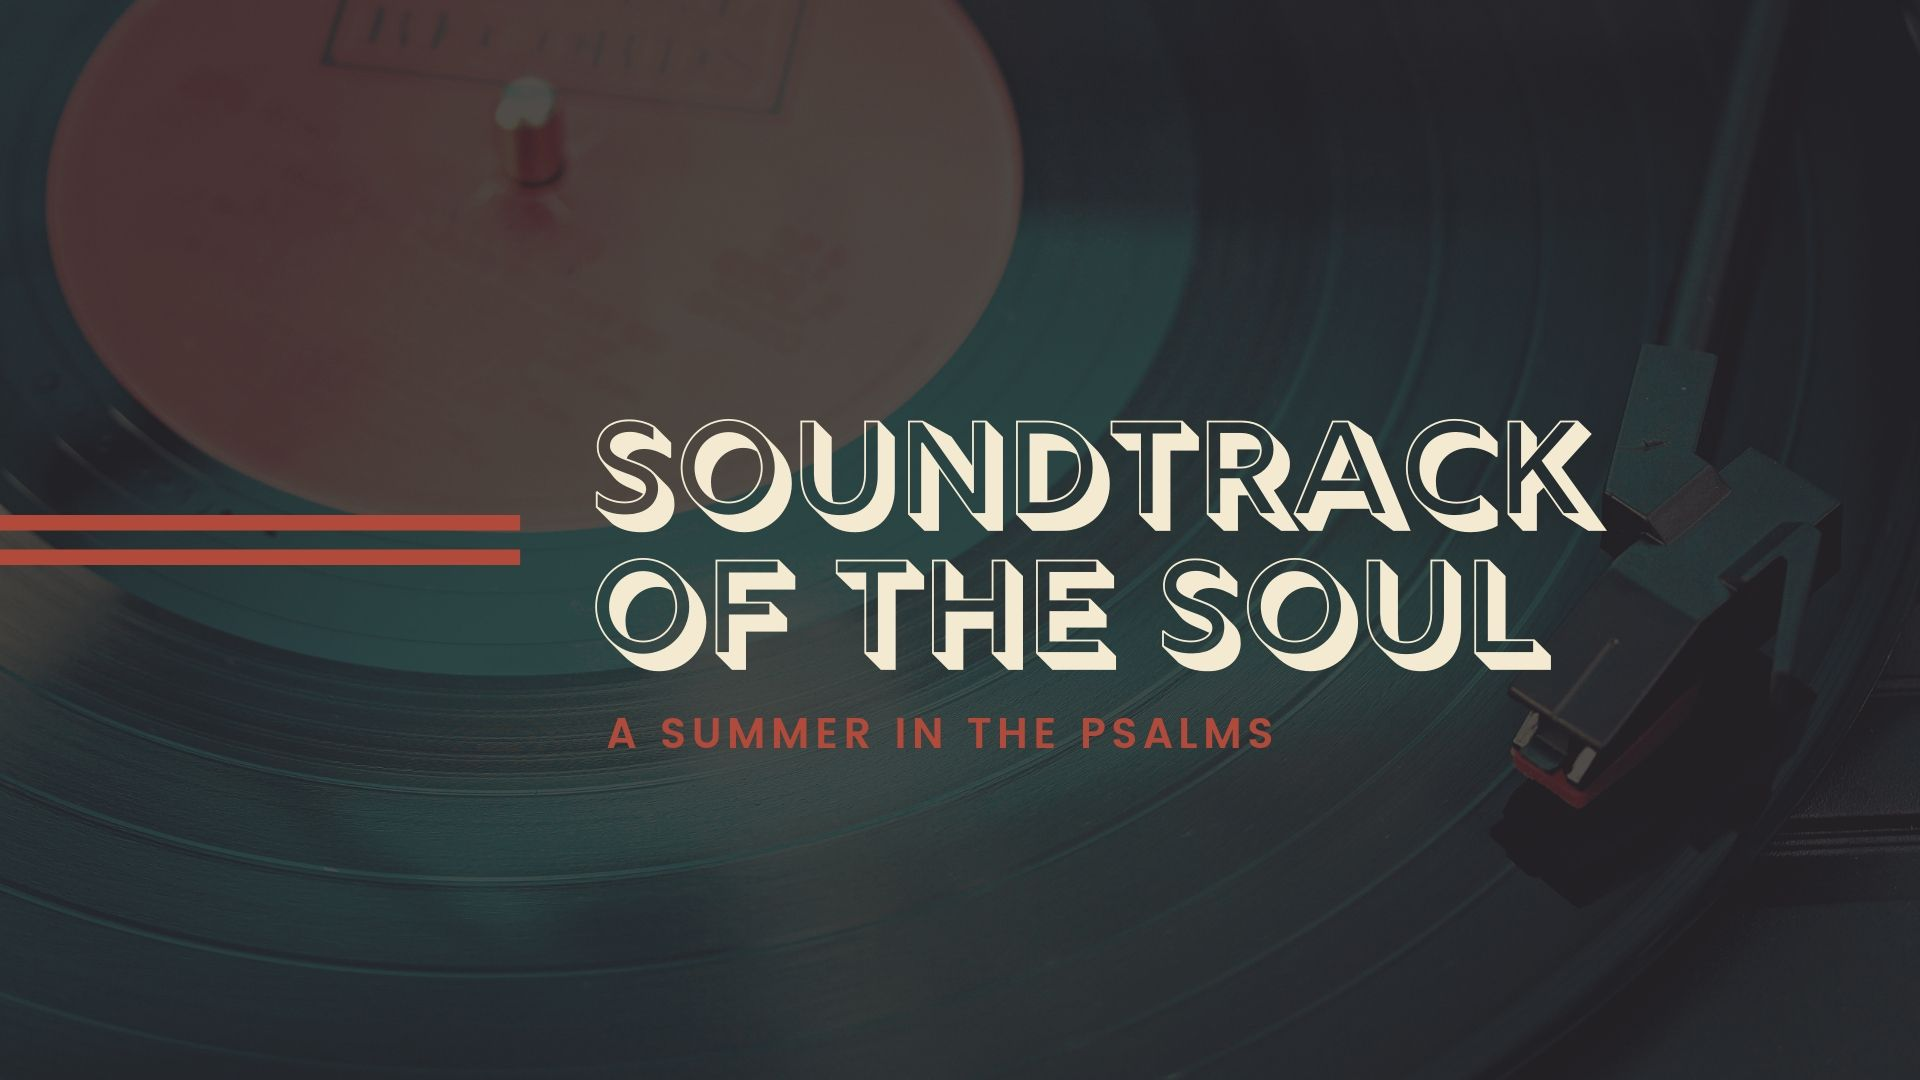 """SOUNDTRACK OF THE SOUL: A SUMMER IN THE PSALMS - In this series we explored Psalms as a collection of songs and poems that were written to shape the life of faith of the people of God. The Psalms have been the songbook of God's people for millennia, and it's important for us to learn how to engage and make use of this beautiful work of art. As N.T. Wright says, """"The Psalms are not only poetry in themselves; they are to be the cause of poetry in those who sing them, together and individually. They are God's gifts to us so that we can be shaped as his gift to the world."""""""